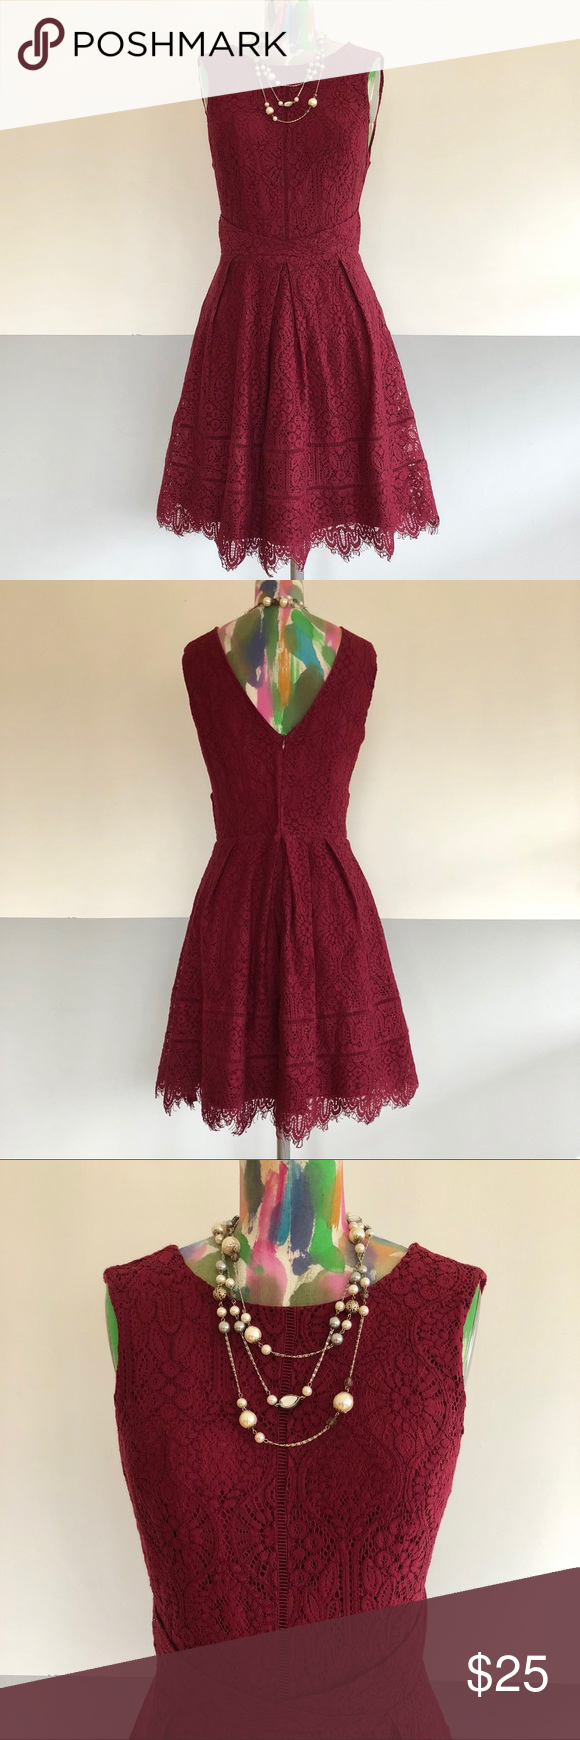 Adelyn Rae Burgundy Lace Dress Lace Burgundy Dress Fit